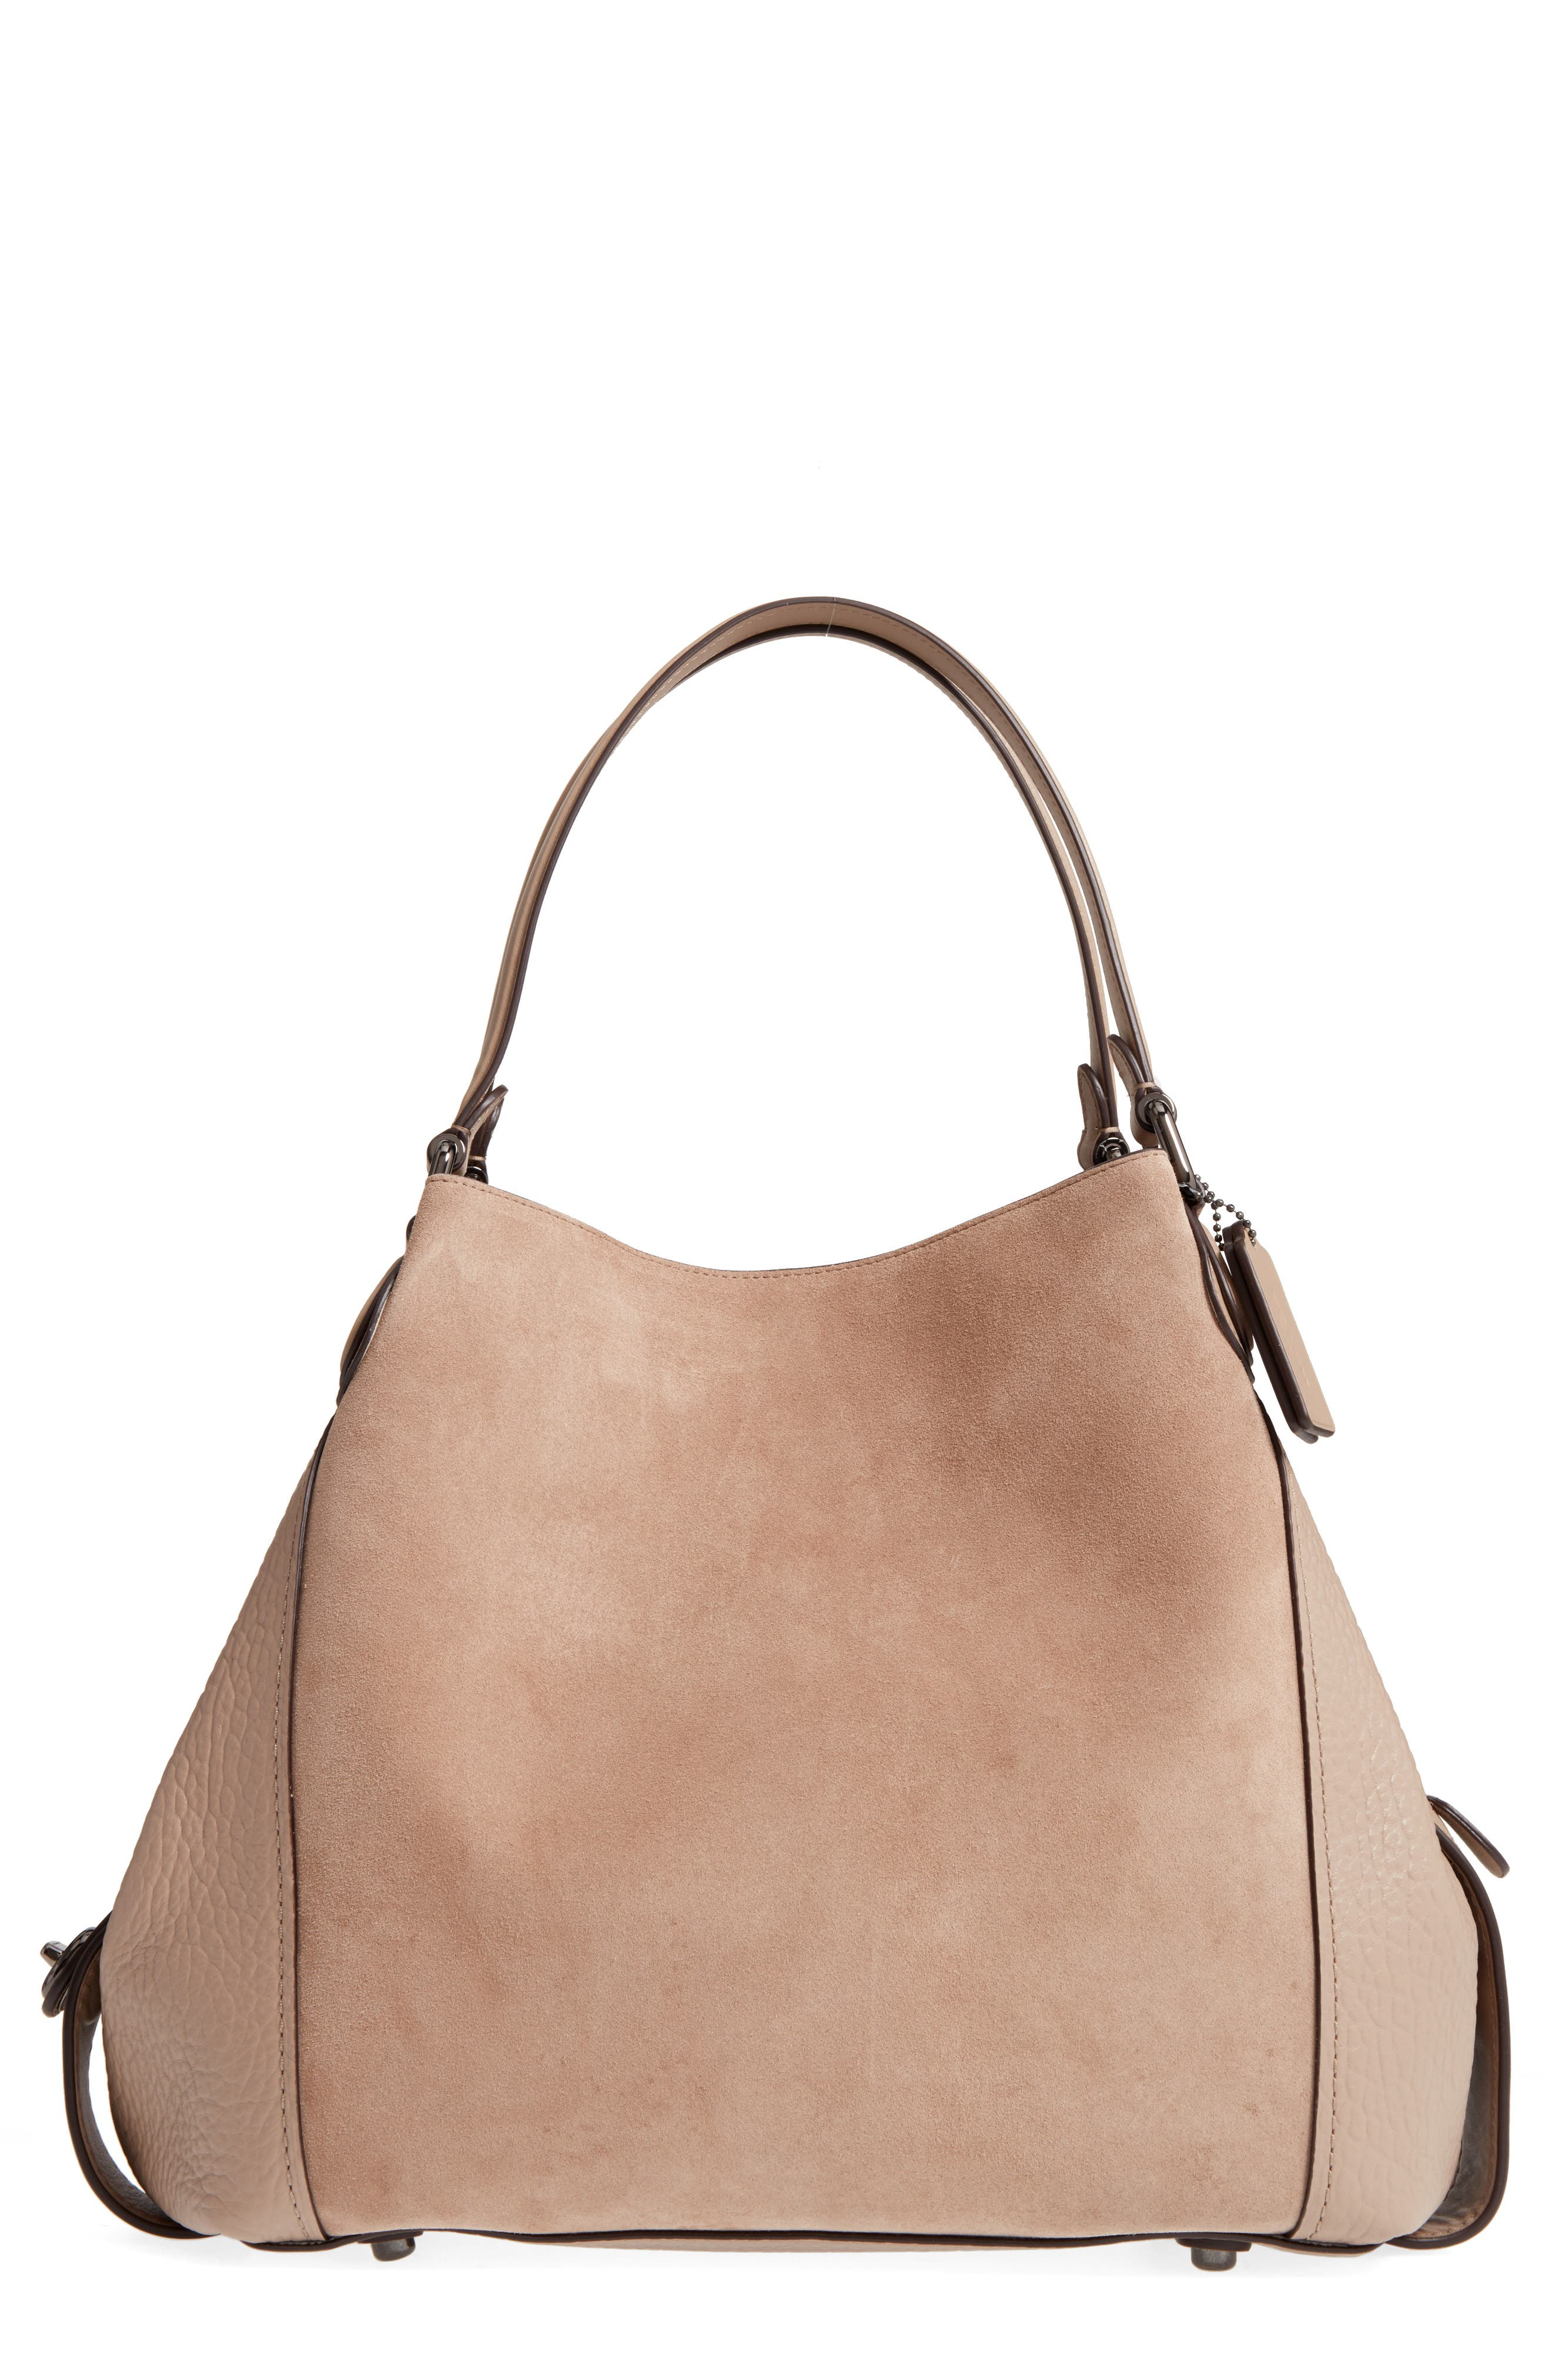 Main Image - COACH Edie Suede & Leather Shoulder Bag